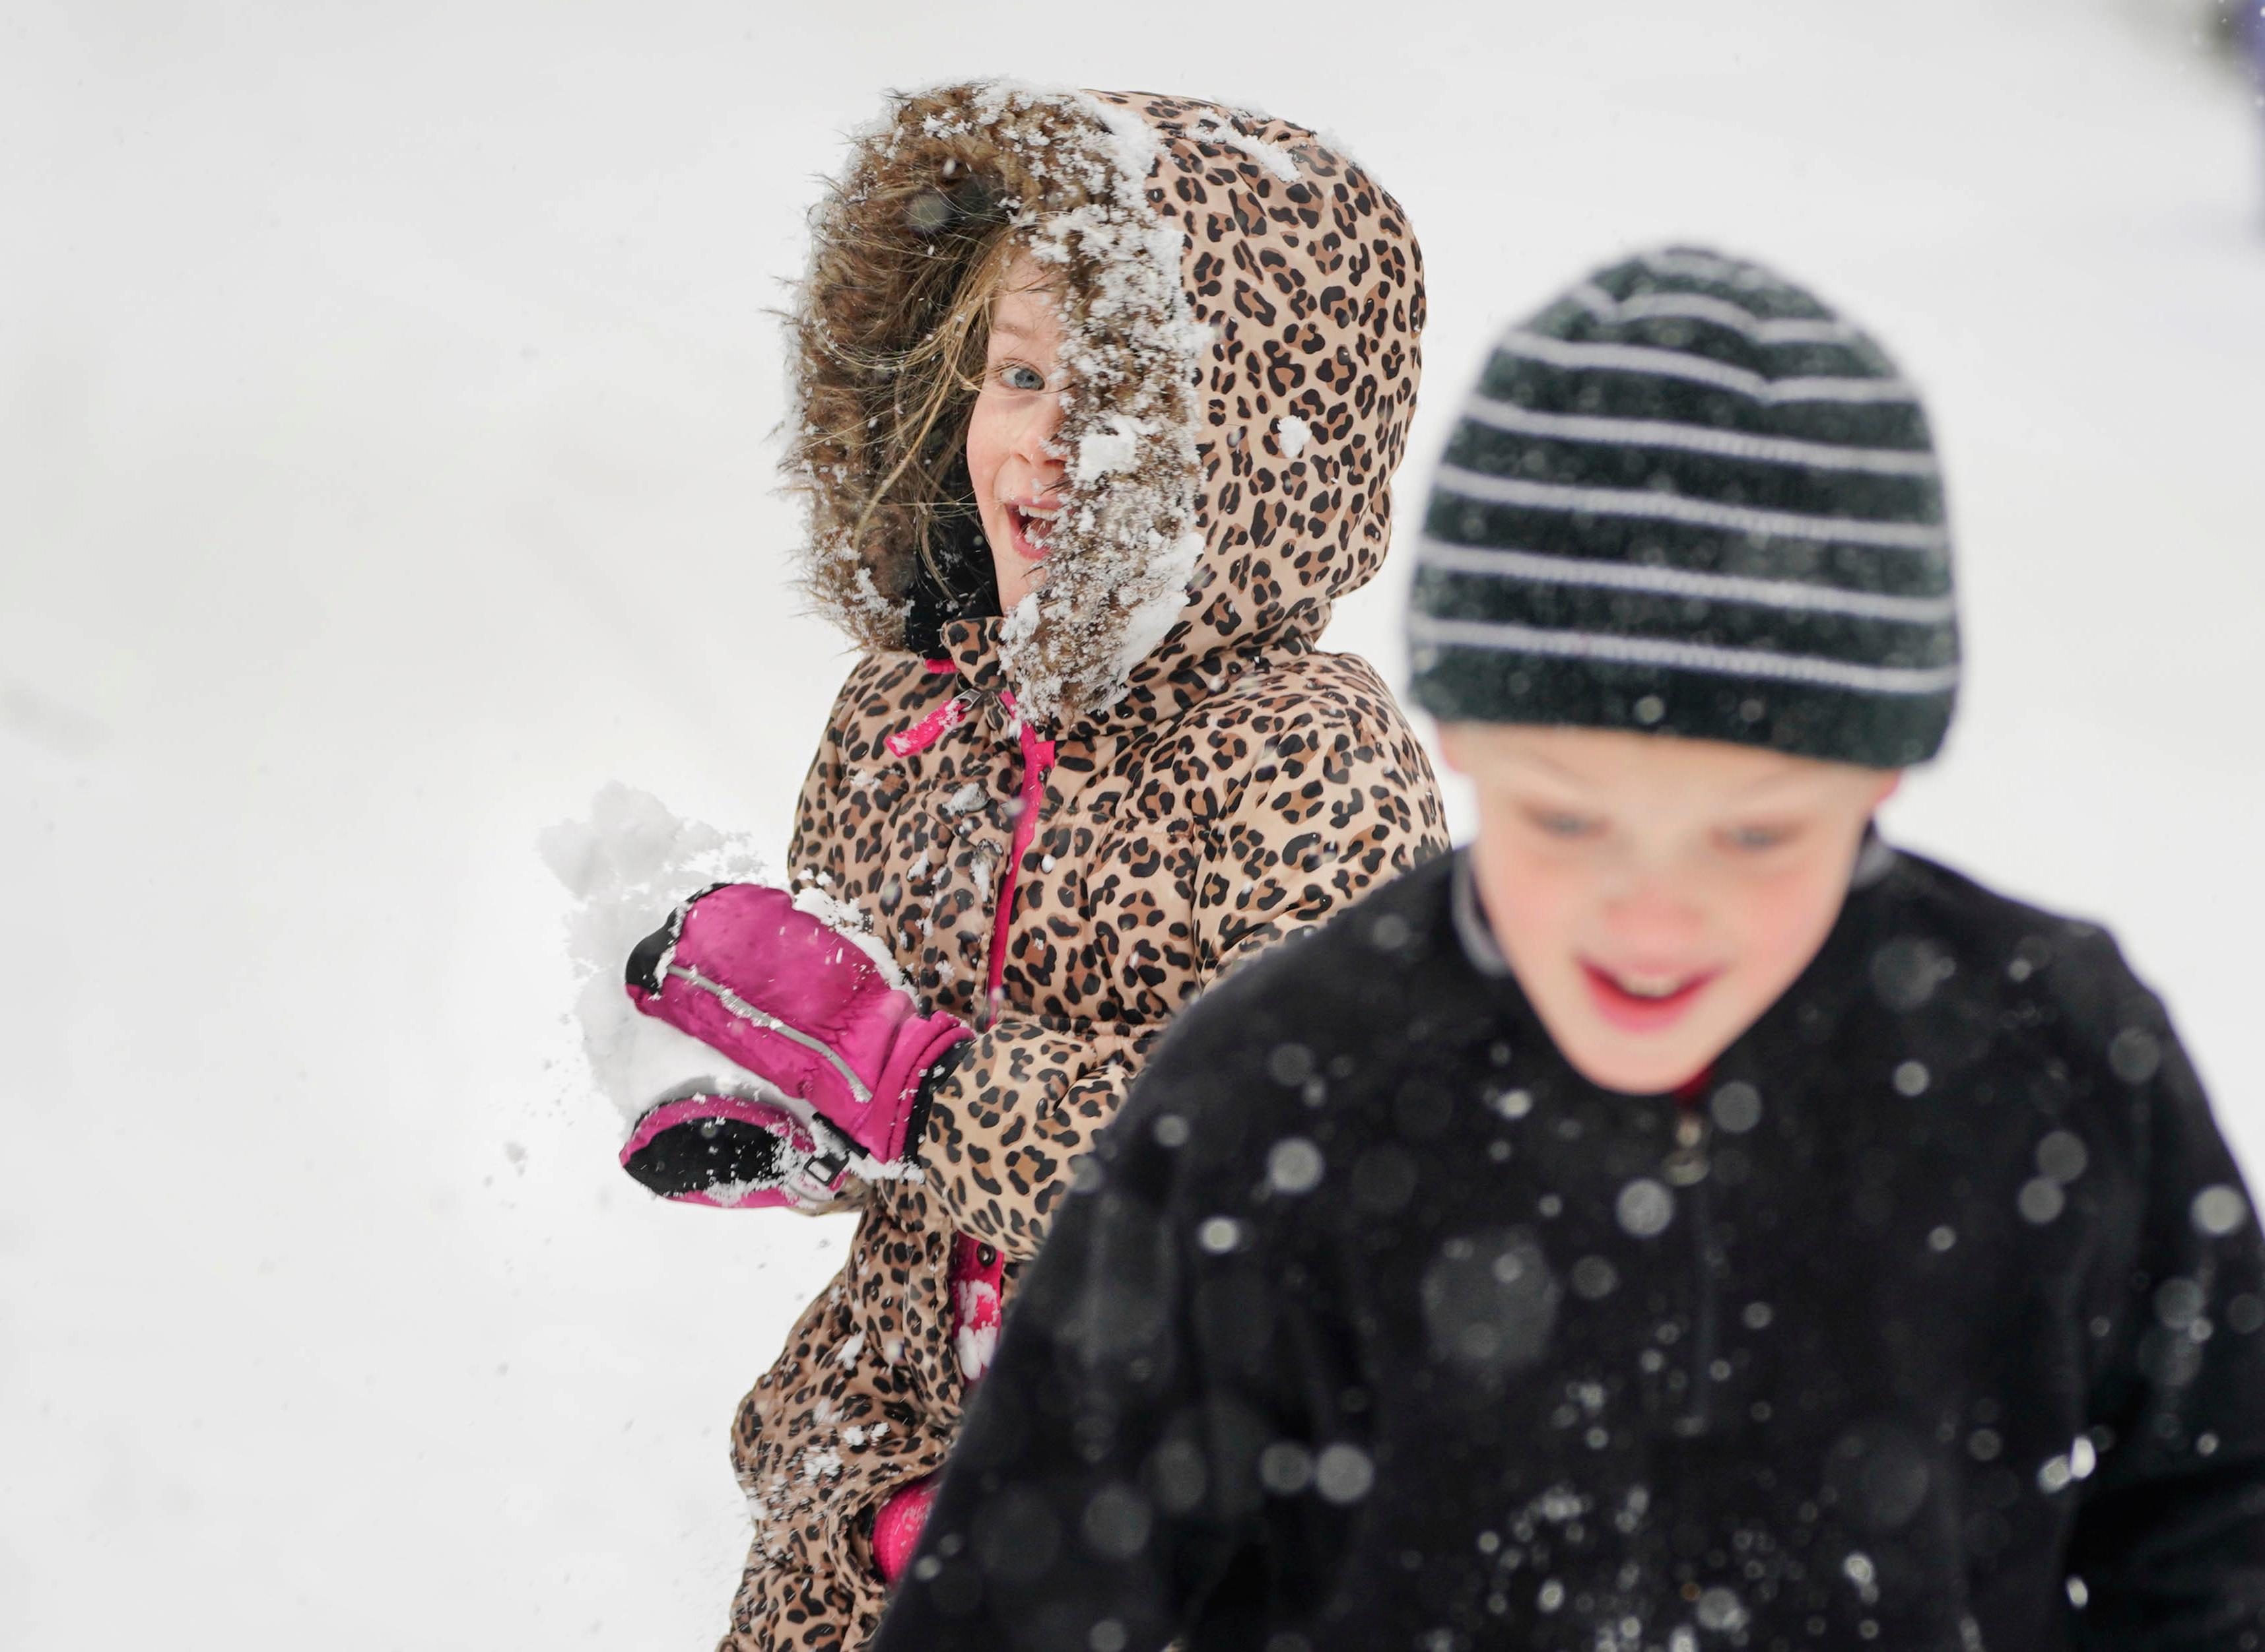 Alma Connoy, 7, left, and her brother Graham Connoy, 8, spent their spring break shoveling and enjoying an epic and good natured snowball fight. Unrelenting snowfall was expected all day, making the commute home challenging in Minnesota's Twin Cities and other locations. (Glen Stubbe/Star Tribune via AP)